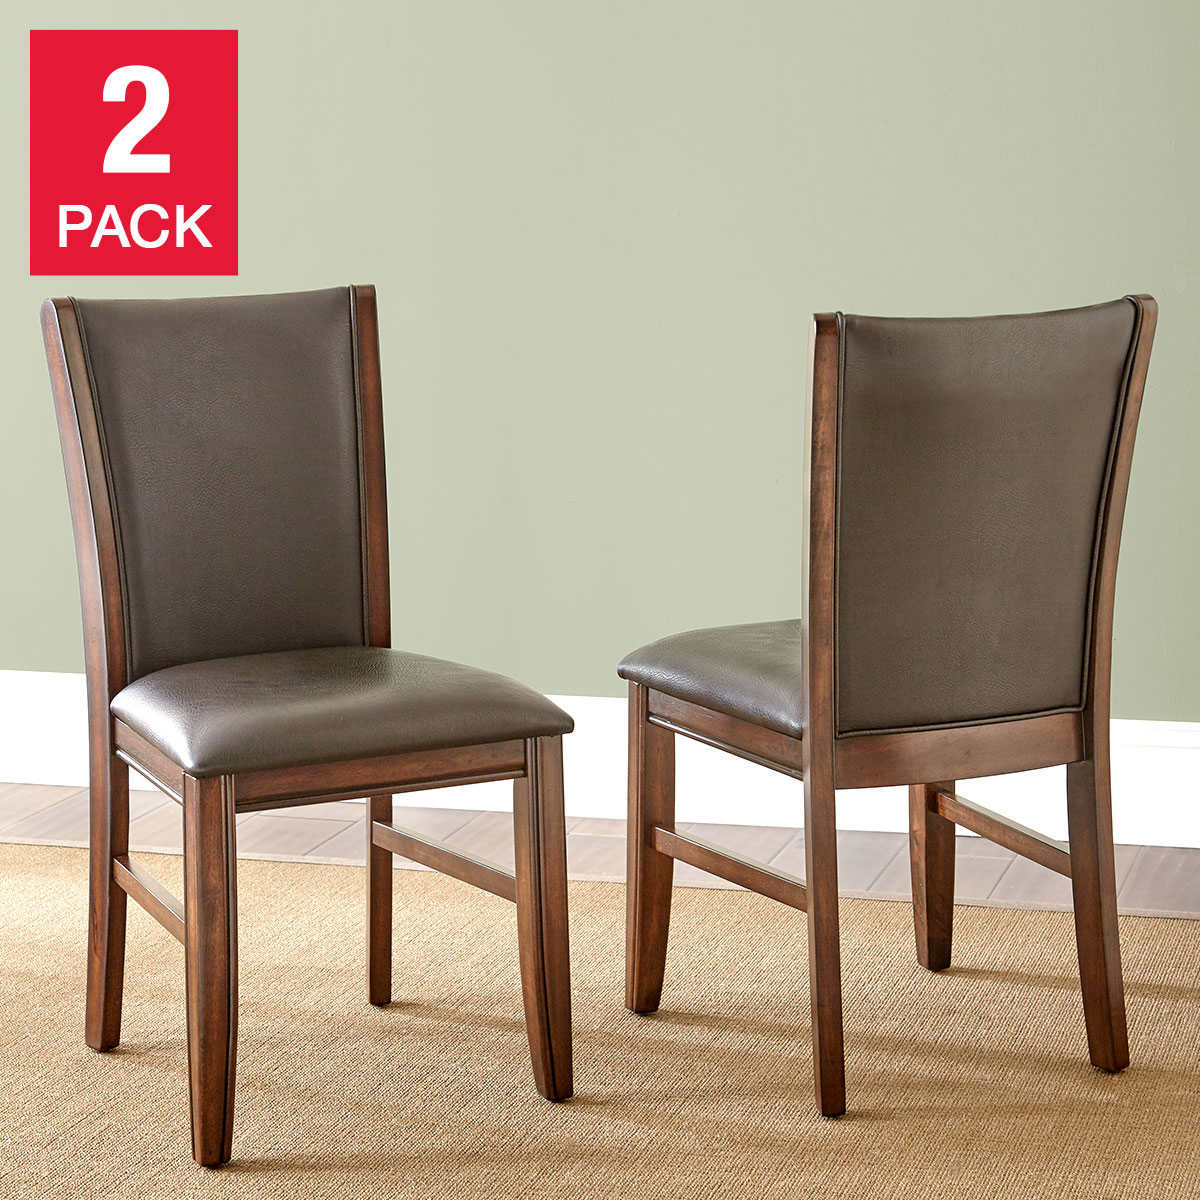 dining chairs leather kitchen chairs Edgewater Dining Chair 2 pack